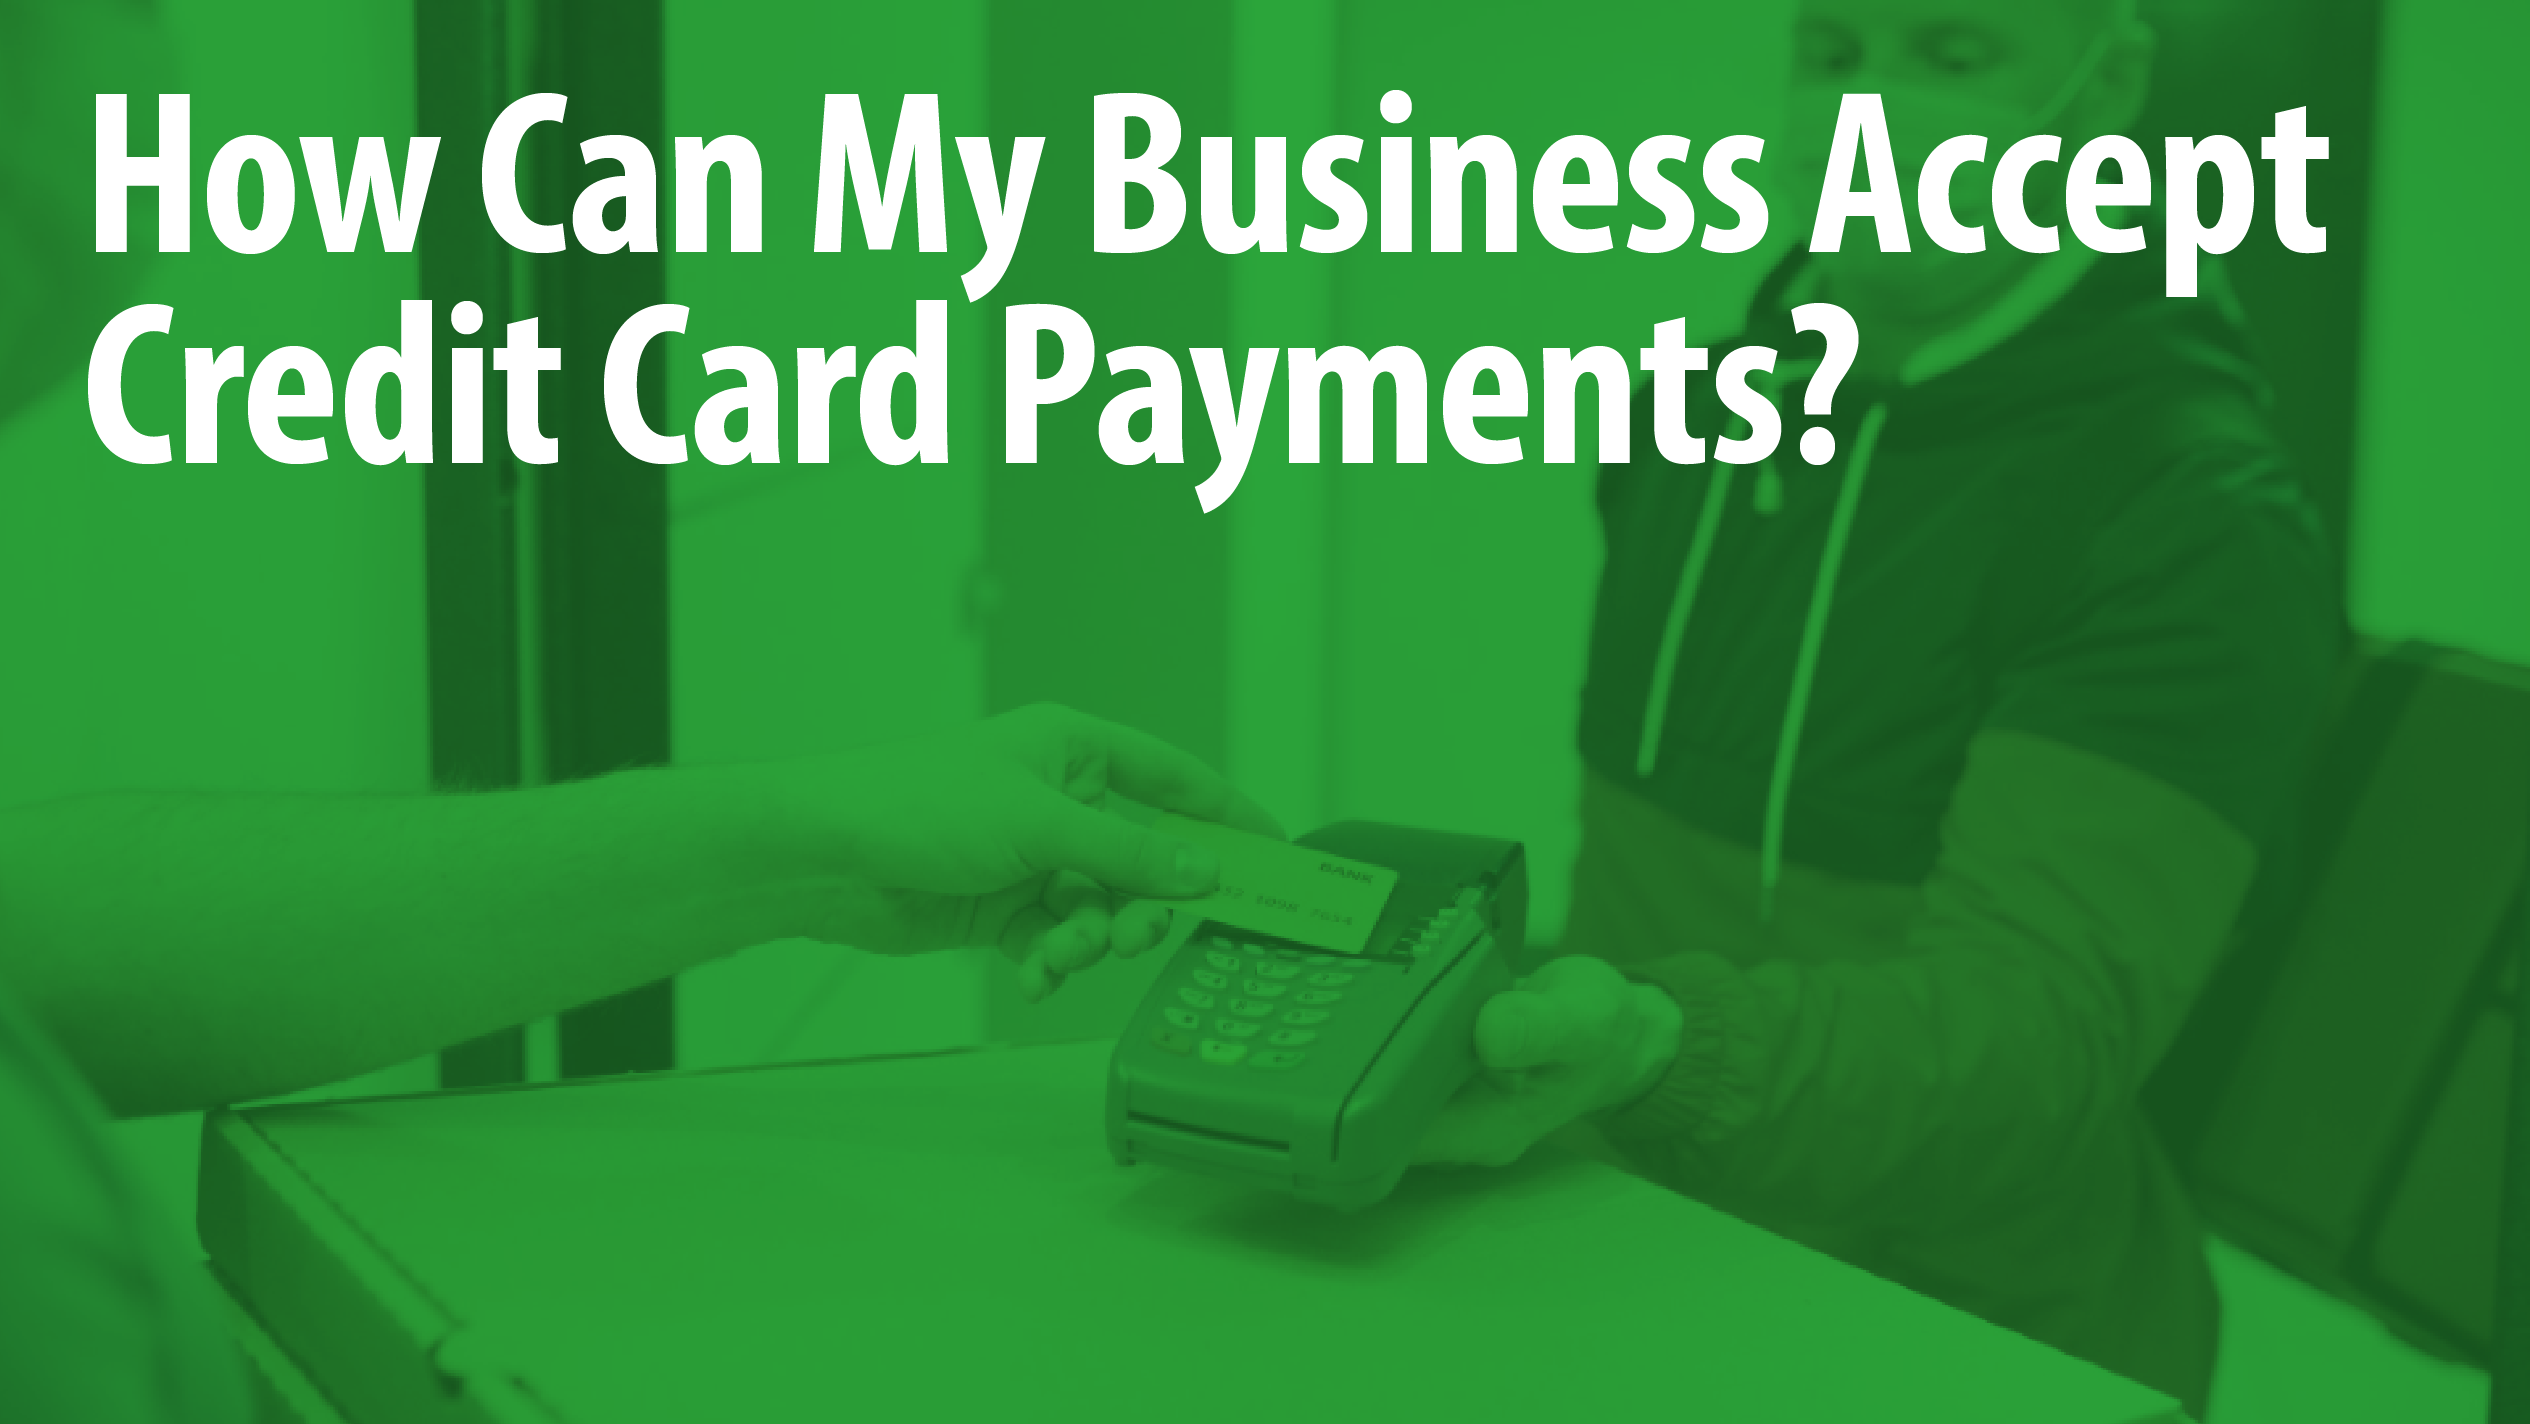 How Can My Business Accept Credit Card Payments?